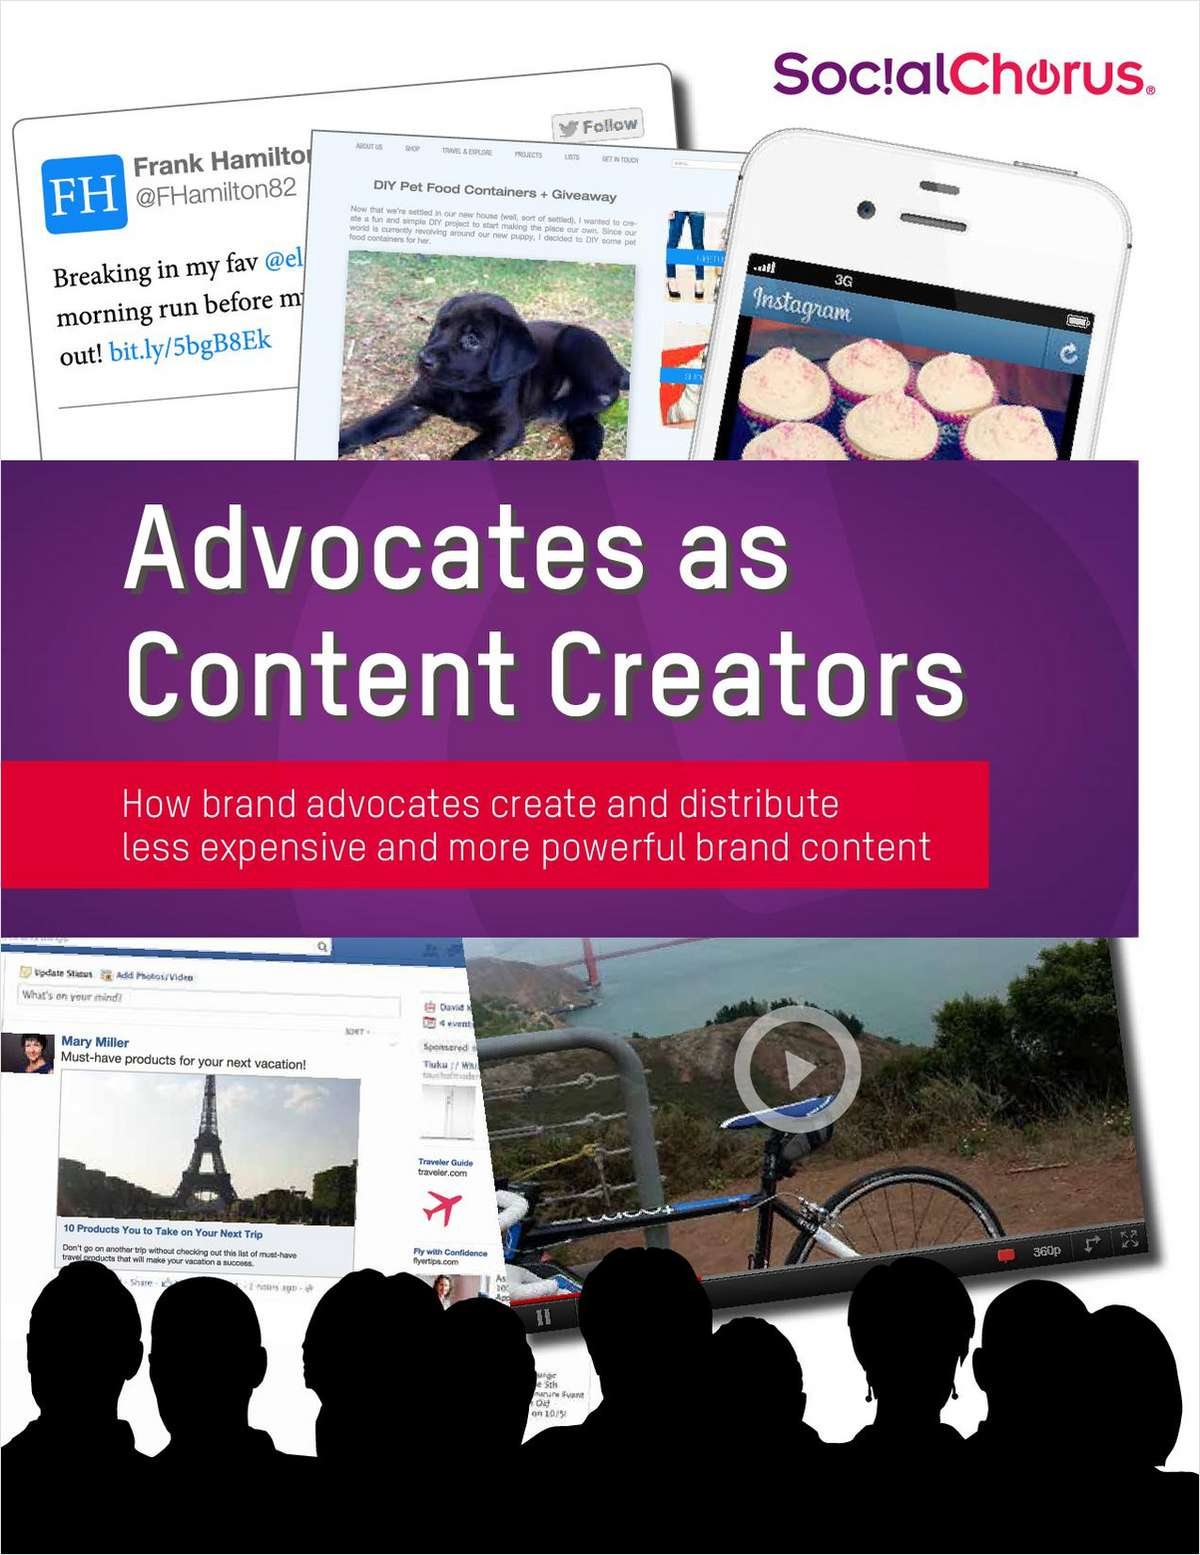 Power Brand Advocates to be Content Creators